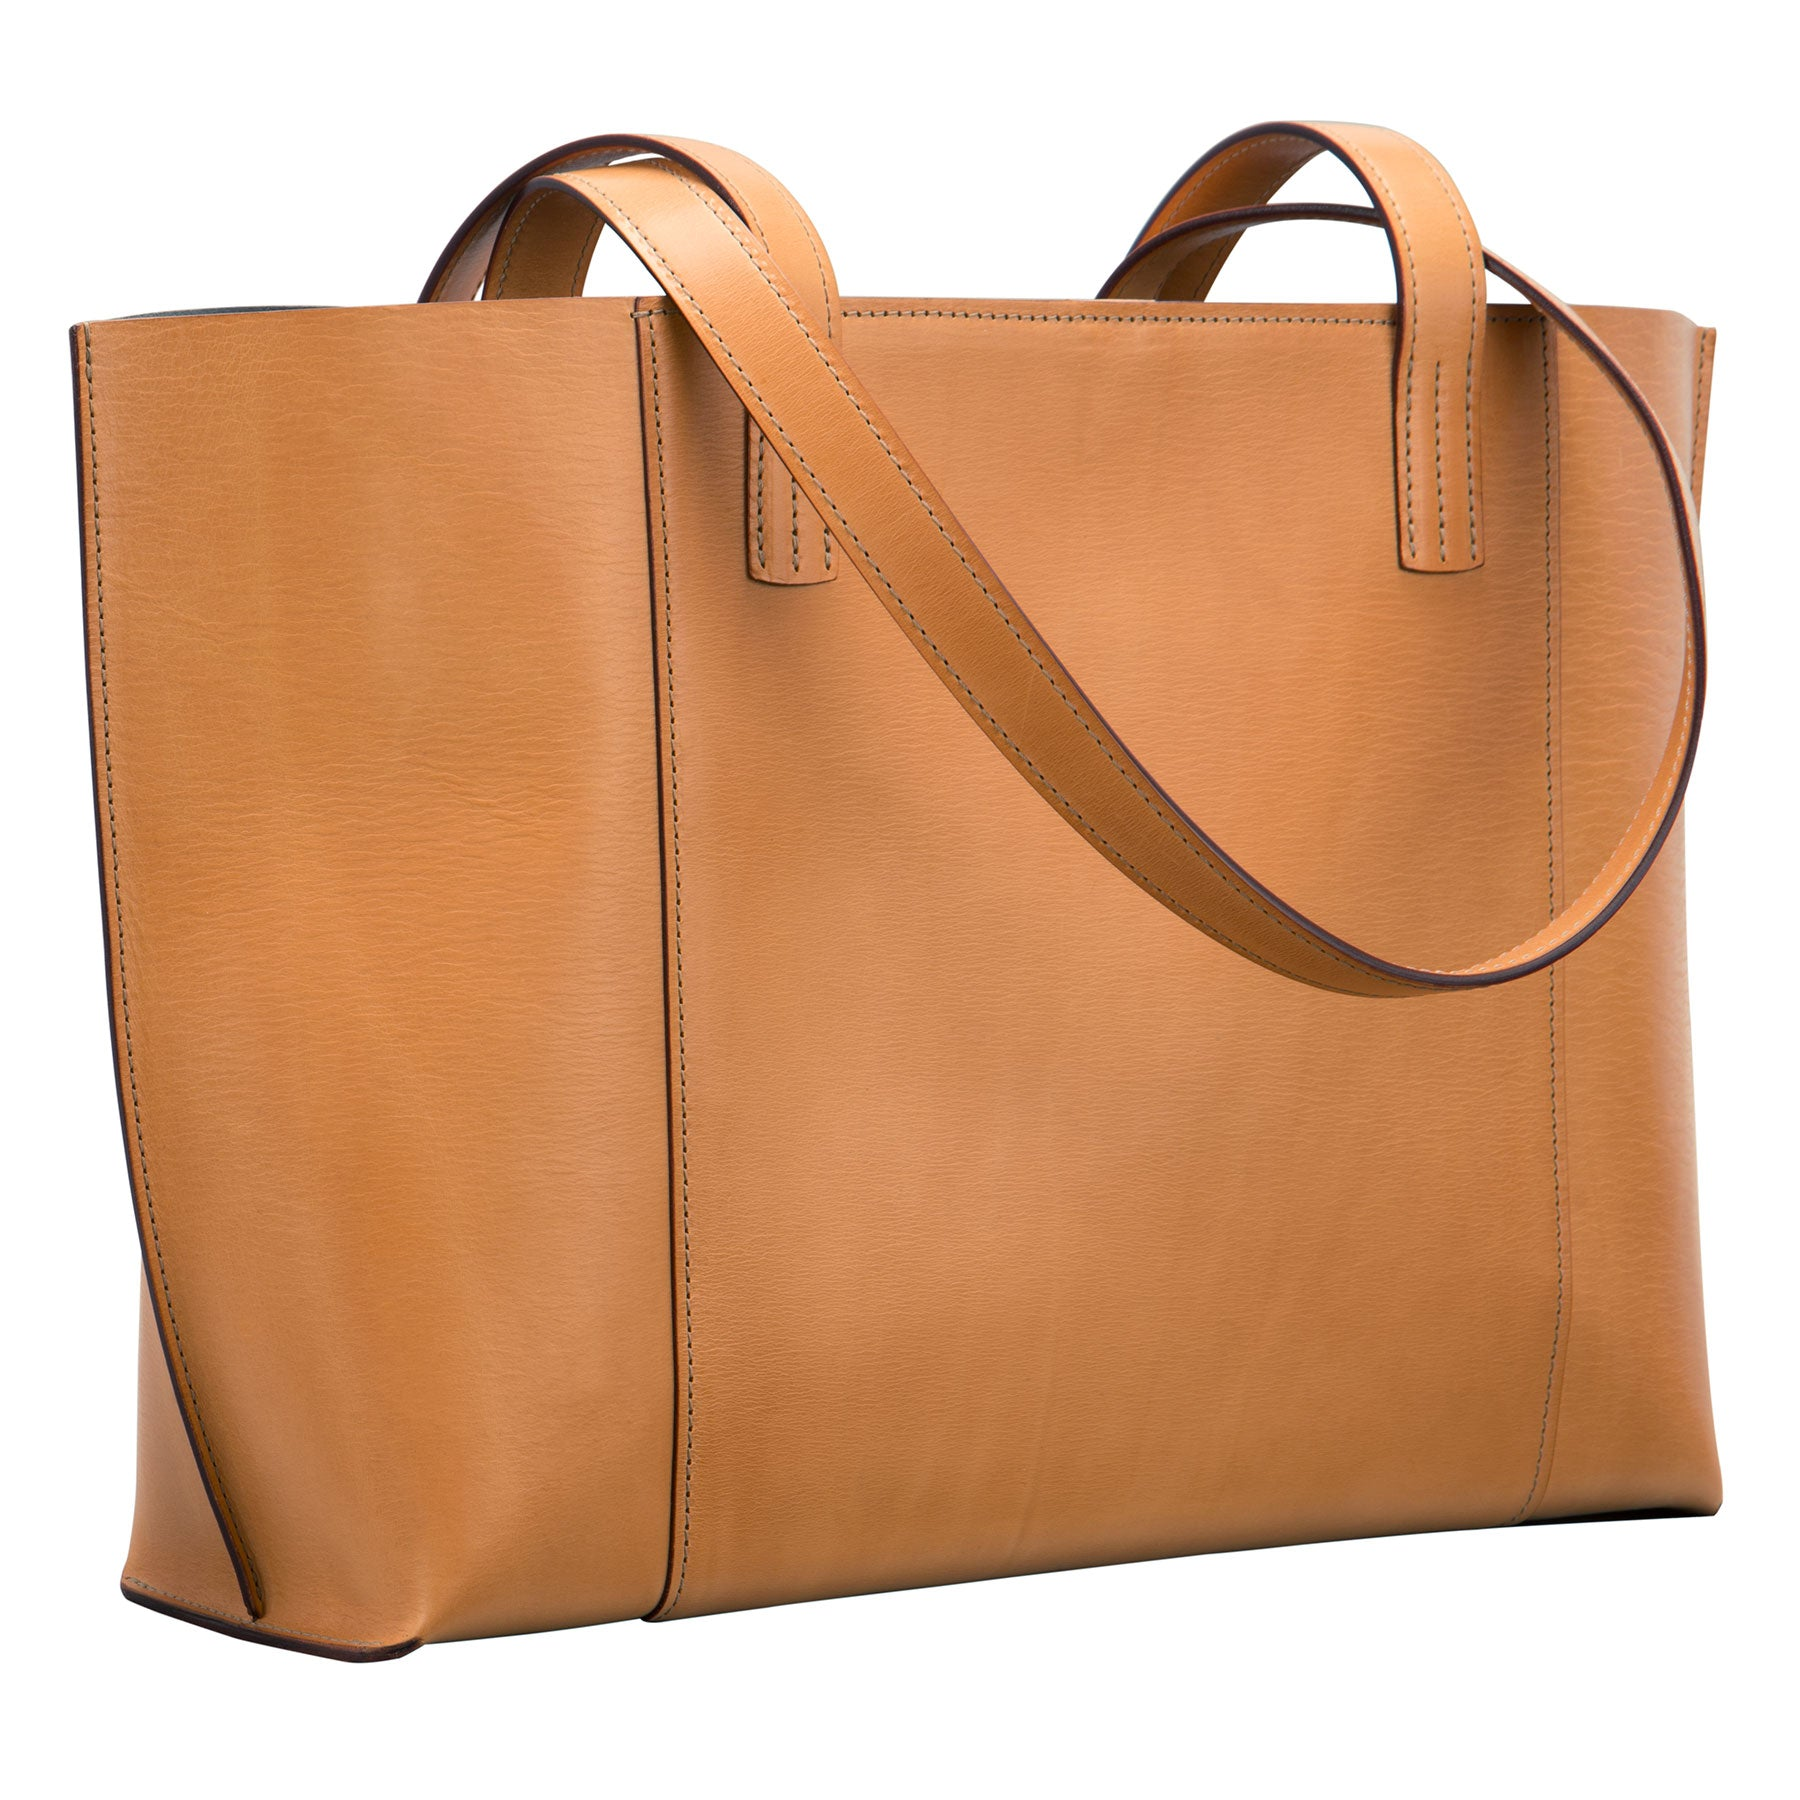 Glaser Designs Ellie Tote. Hand burnished Natural vegetable tanned leather. Made to-measure, custom sizes.